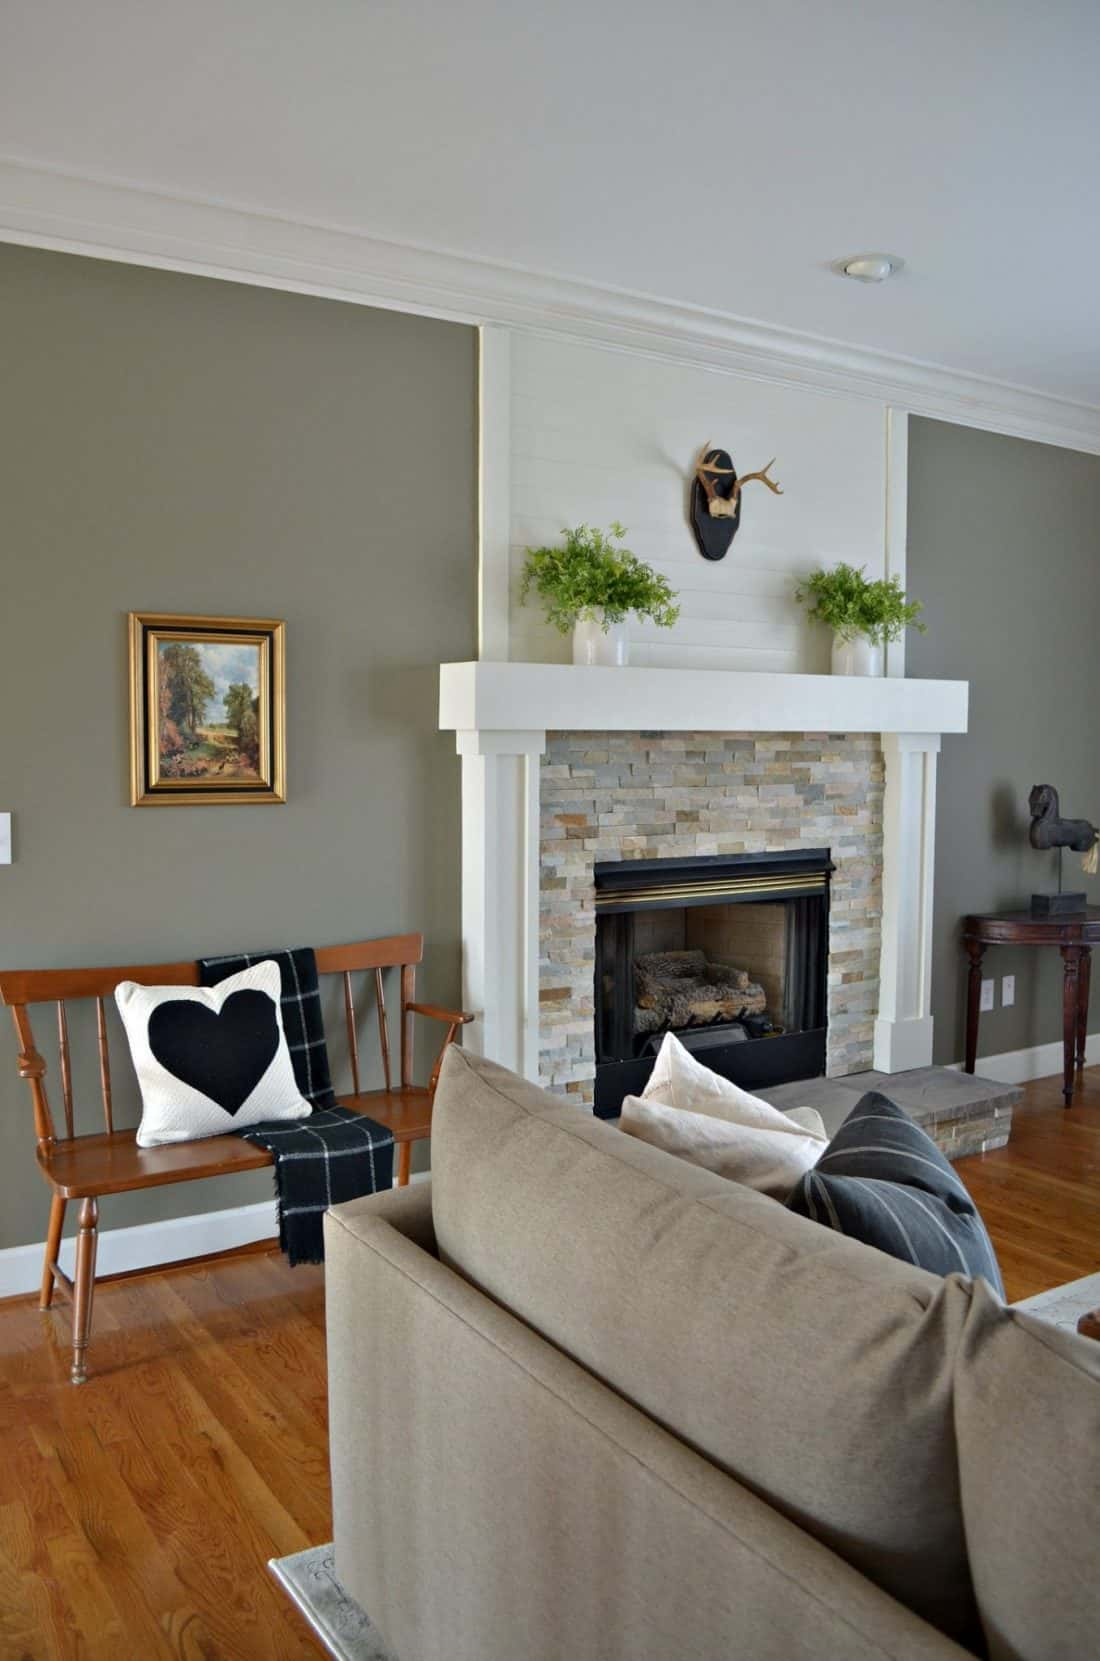 Mixing styles in this living room makeover make it a great space to relax.